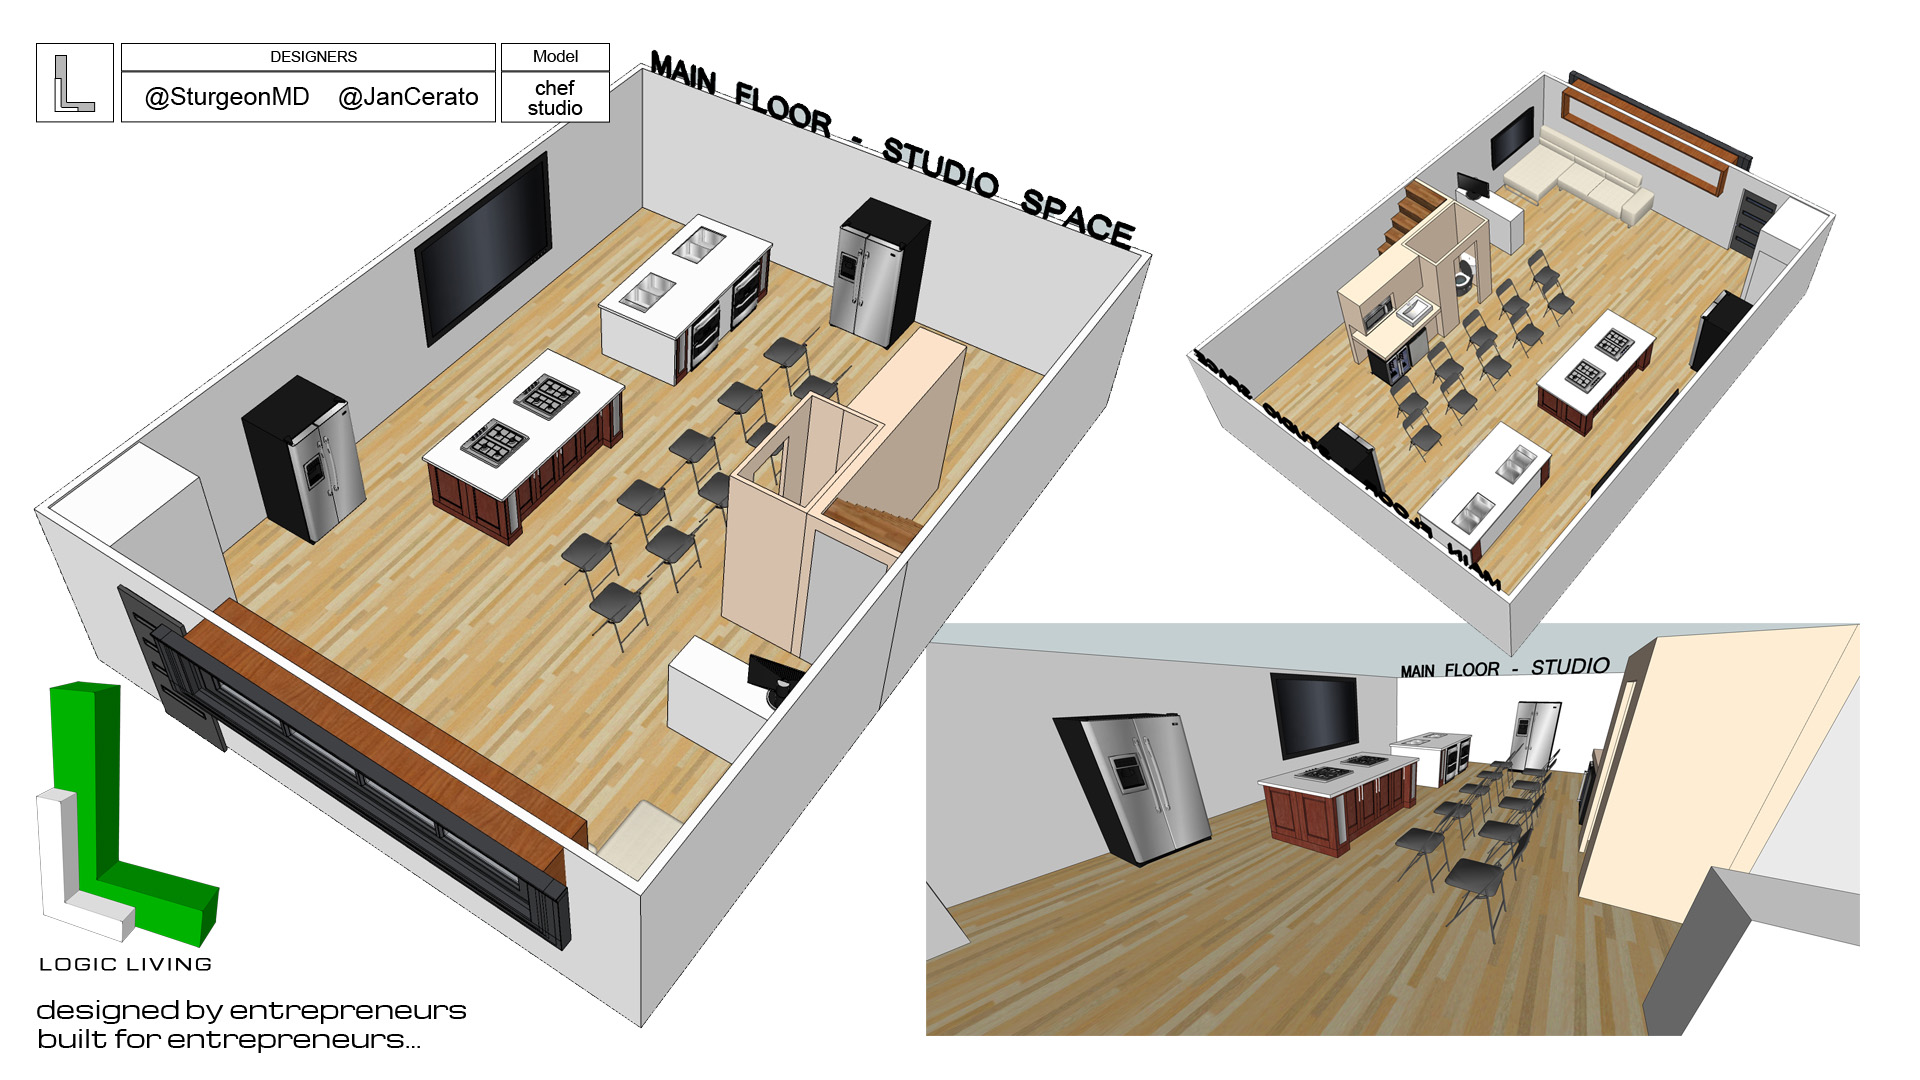 hight resolution of jan cerato creates a chef home studio 4 level 3500sqft condo yyc